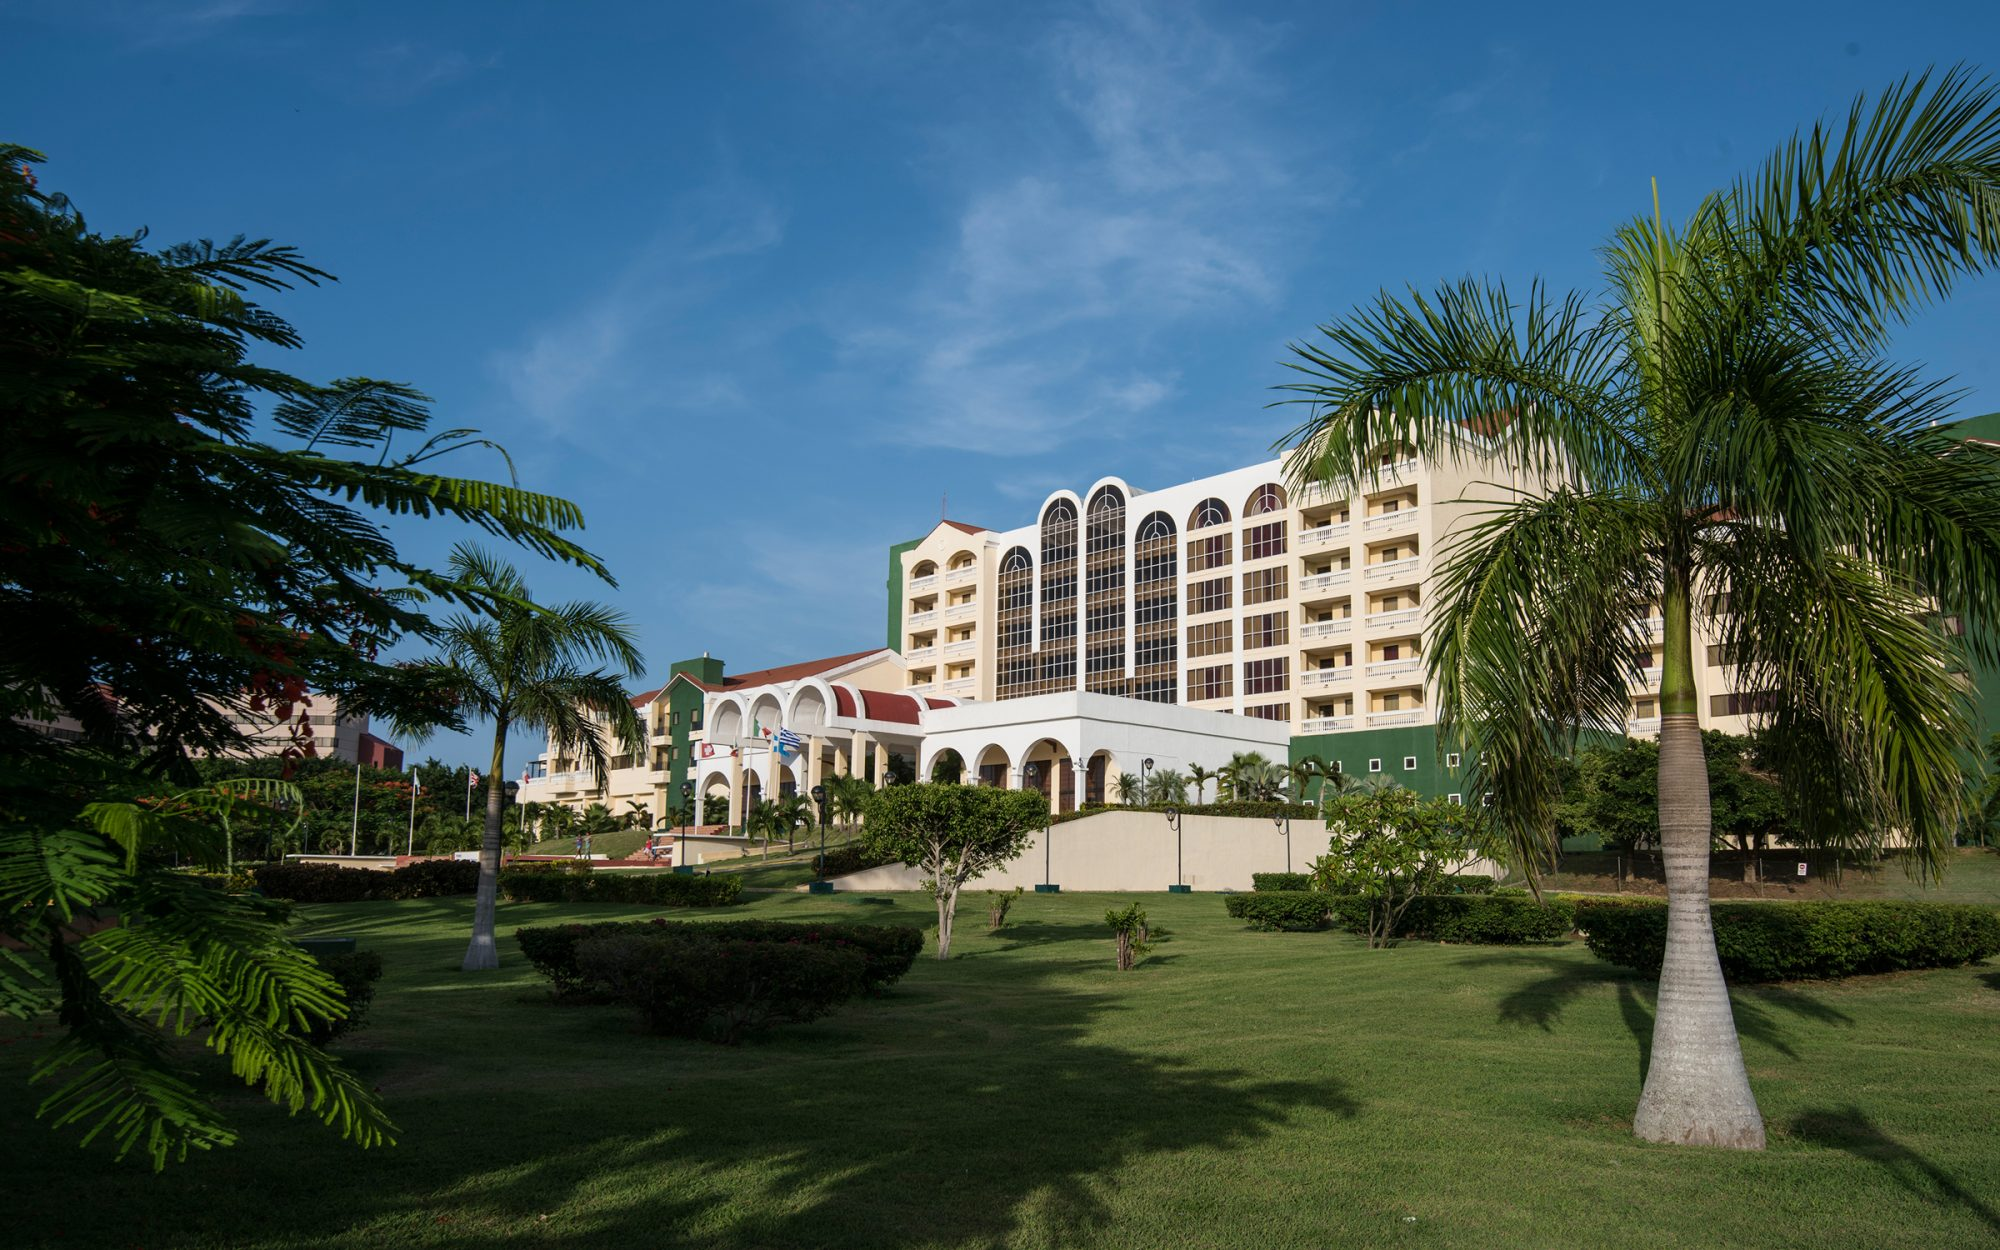 Starwood Becomes the First U.S. Hotel Chain in Cuba Since 1959